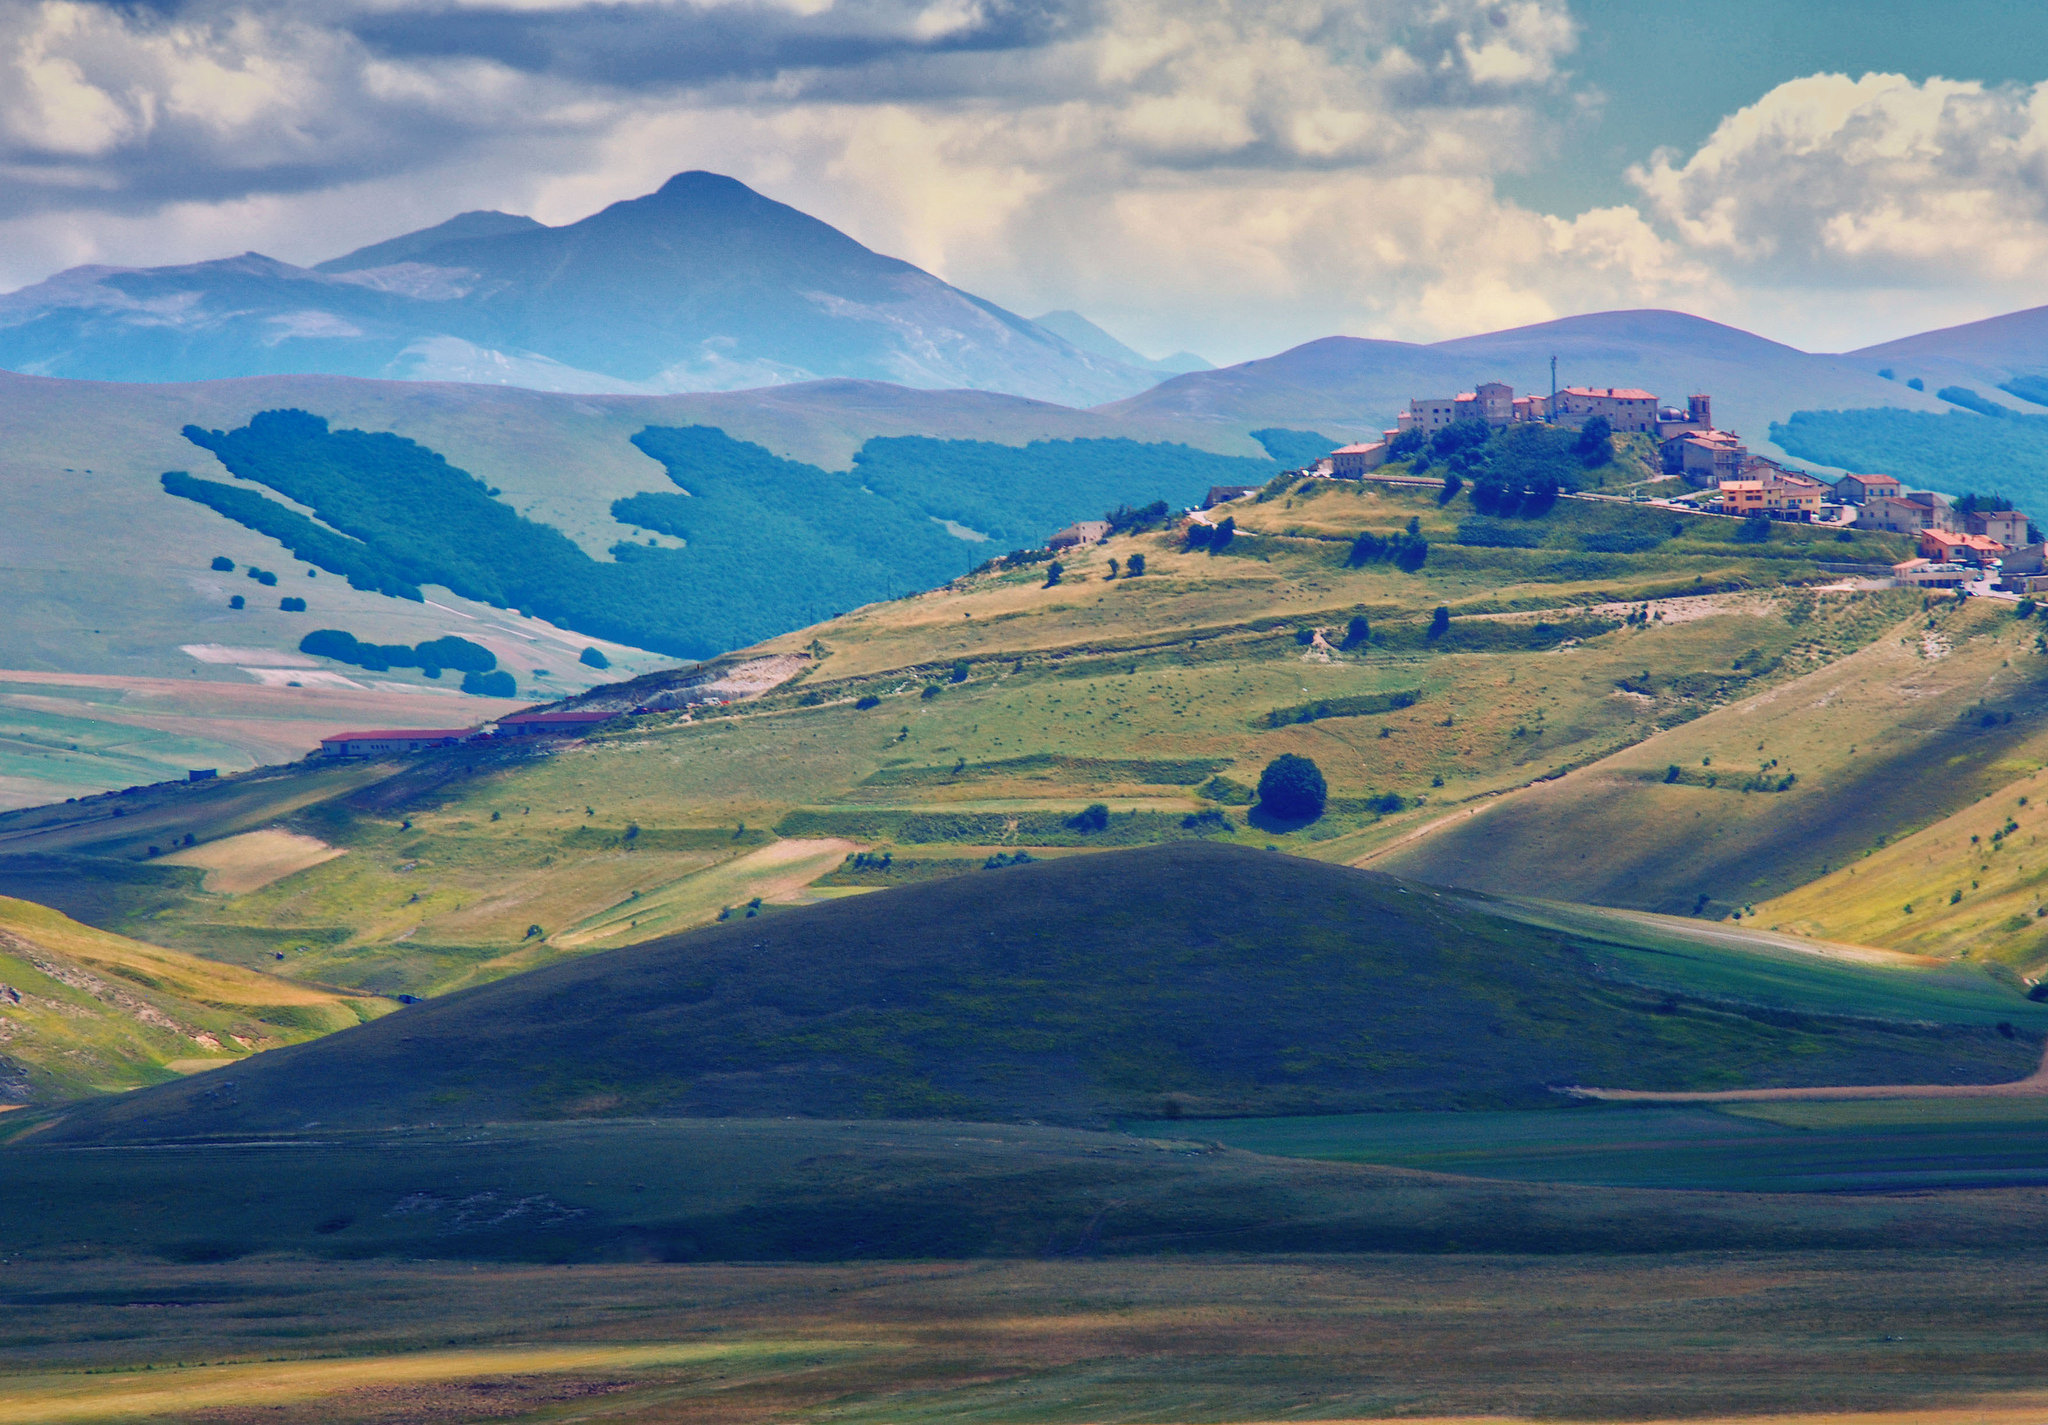 The Central Italian hills are alive with Italian sweets. ;) Castelluccio di Norcia, Umbria, Italy by Eric Huybrechts.